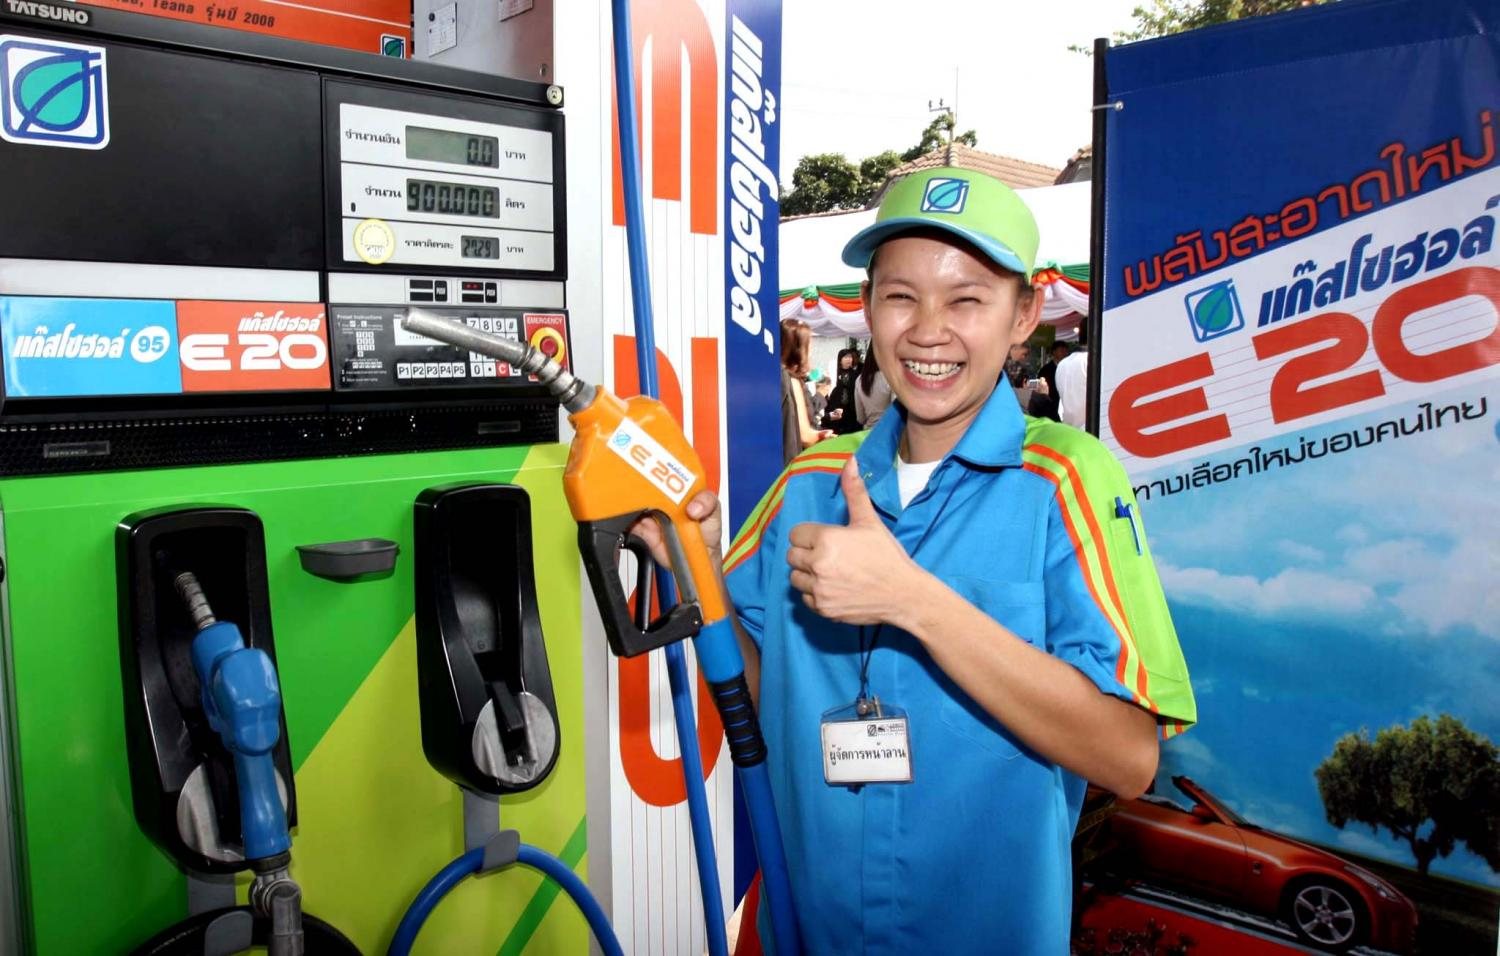 A petrol station worker promotes Gasohol E-20 which is to become the primary gasoline for the country in early March.(Photo by Pongthai Wattanavanitvut)